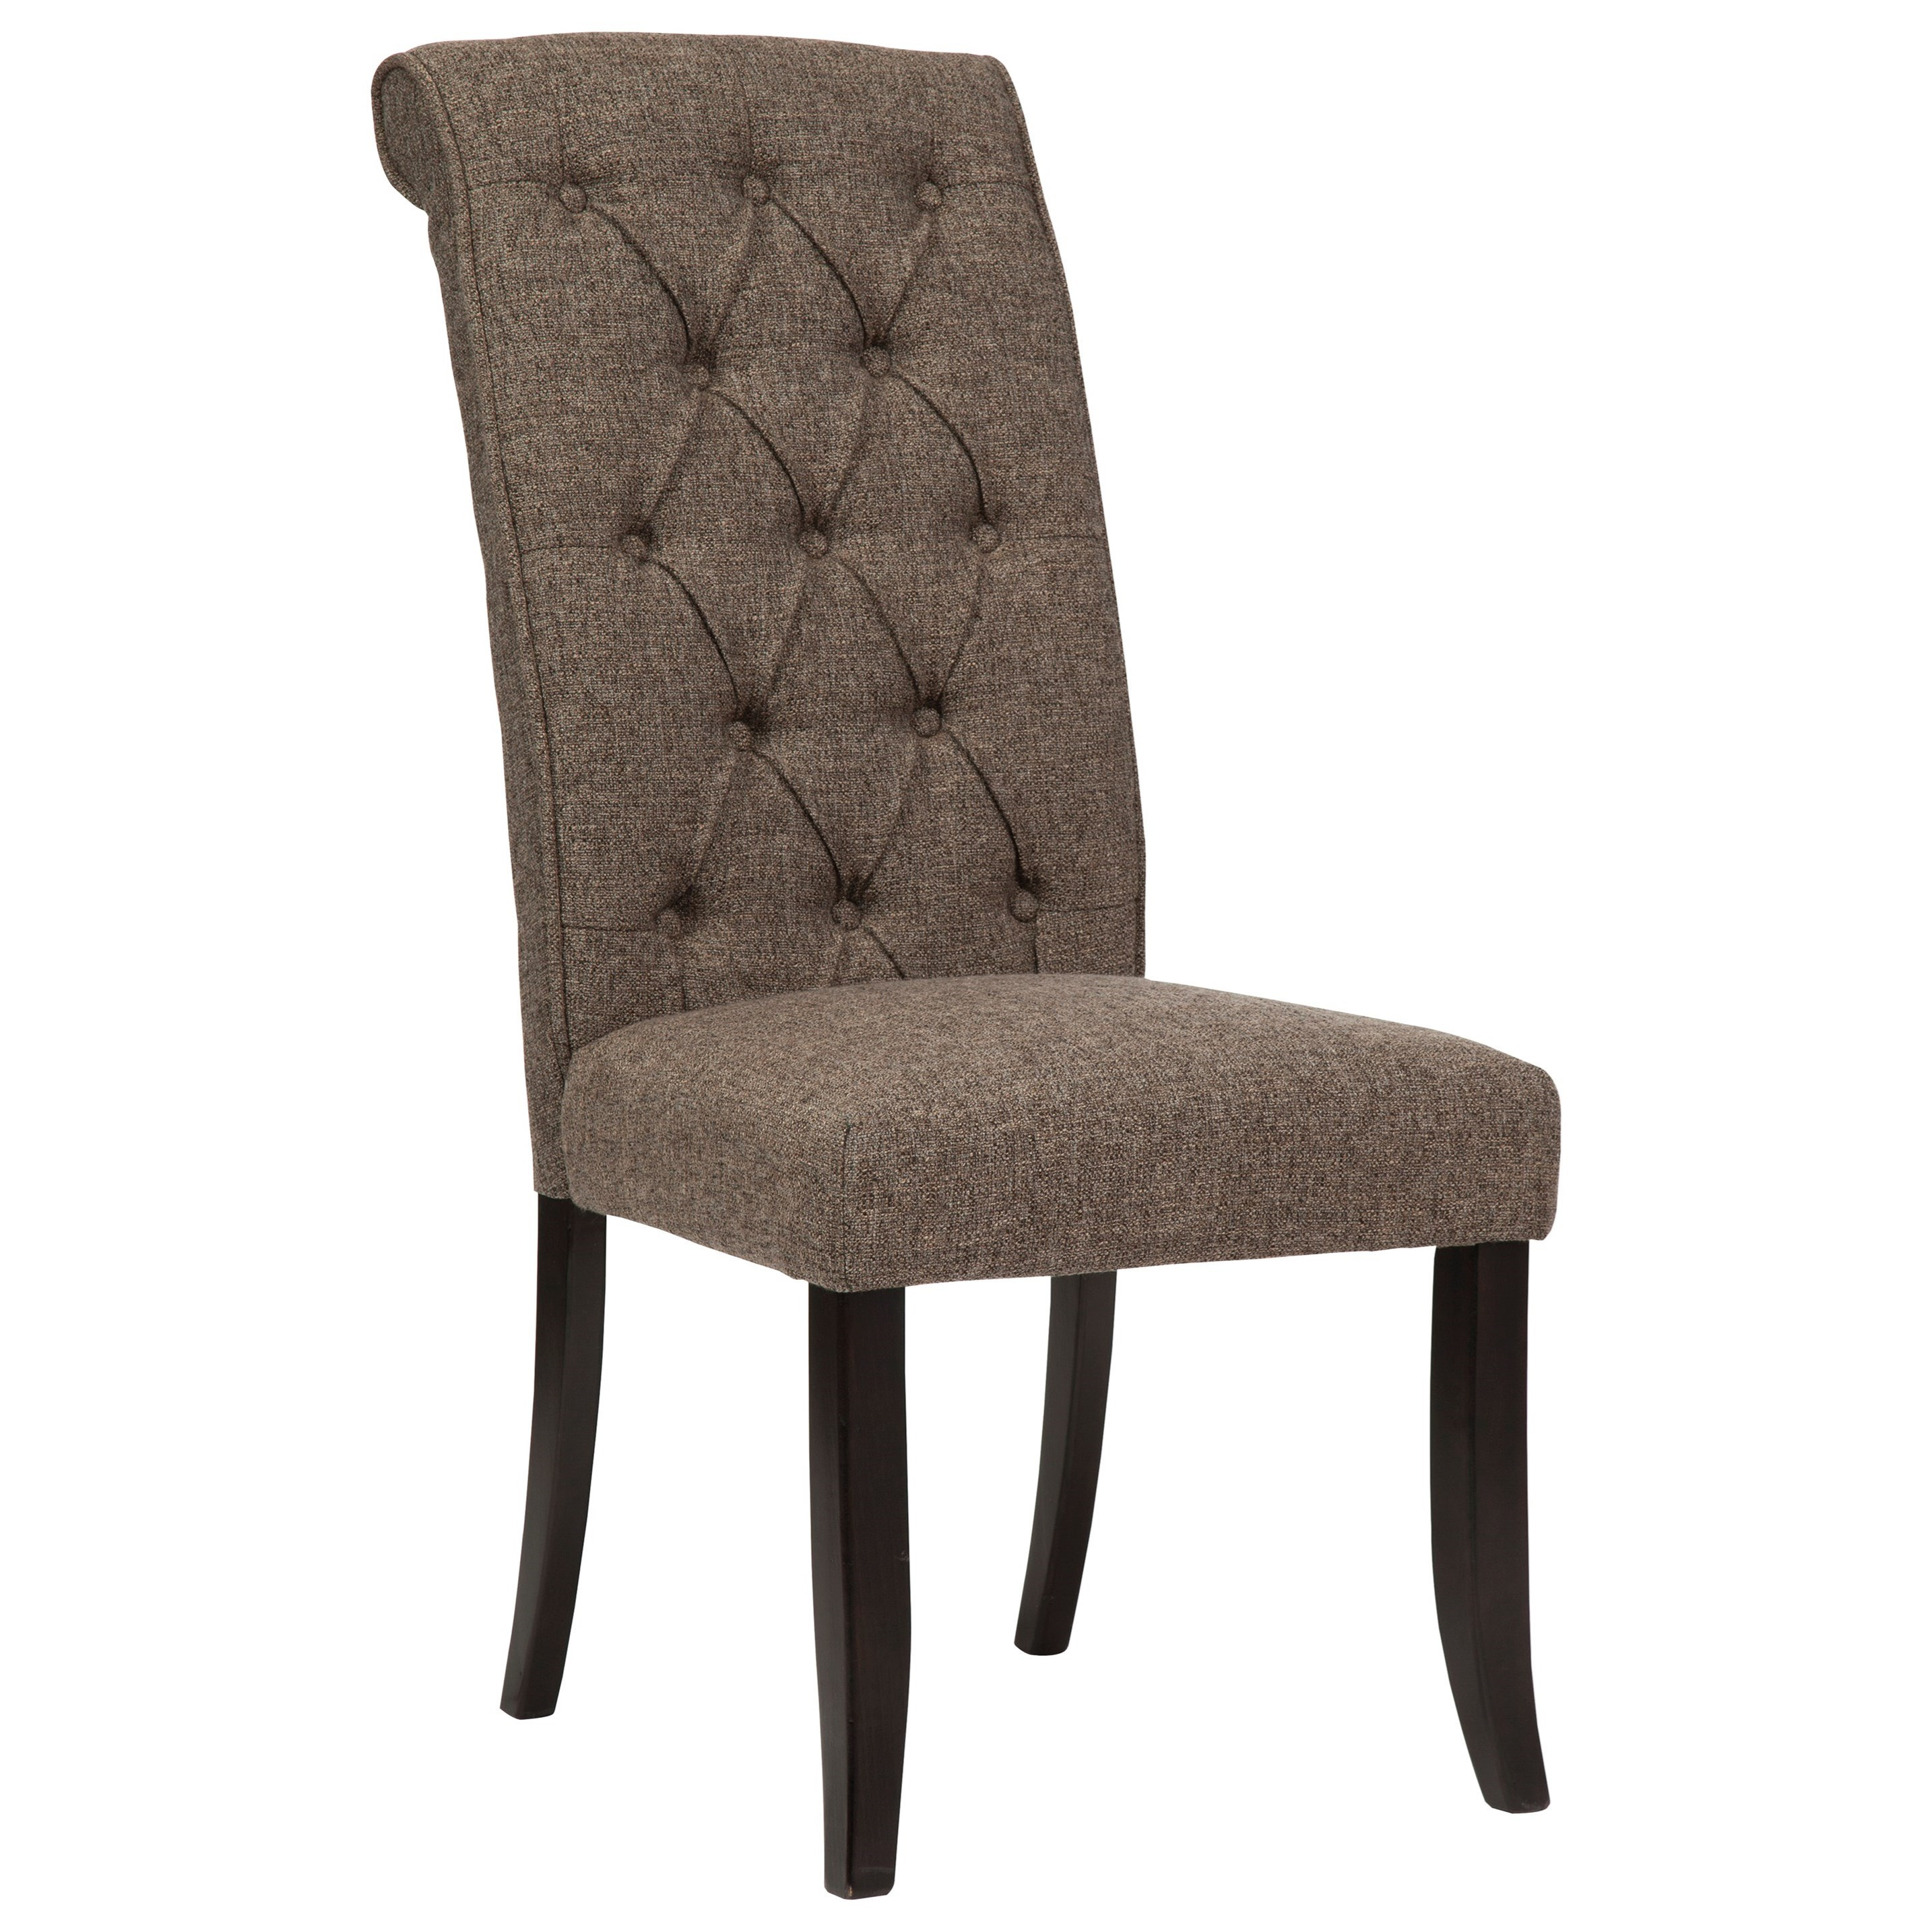 Signature design by ashley tripton d530 02 dining for Upholstered dining room side chairs